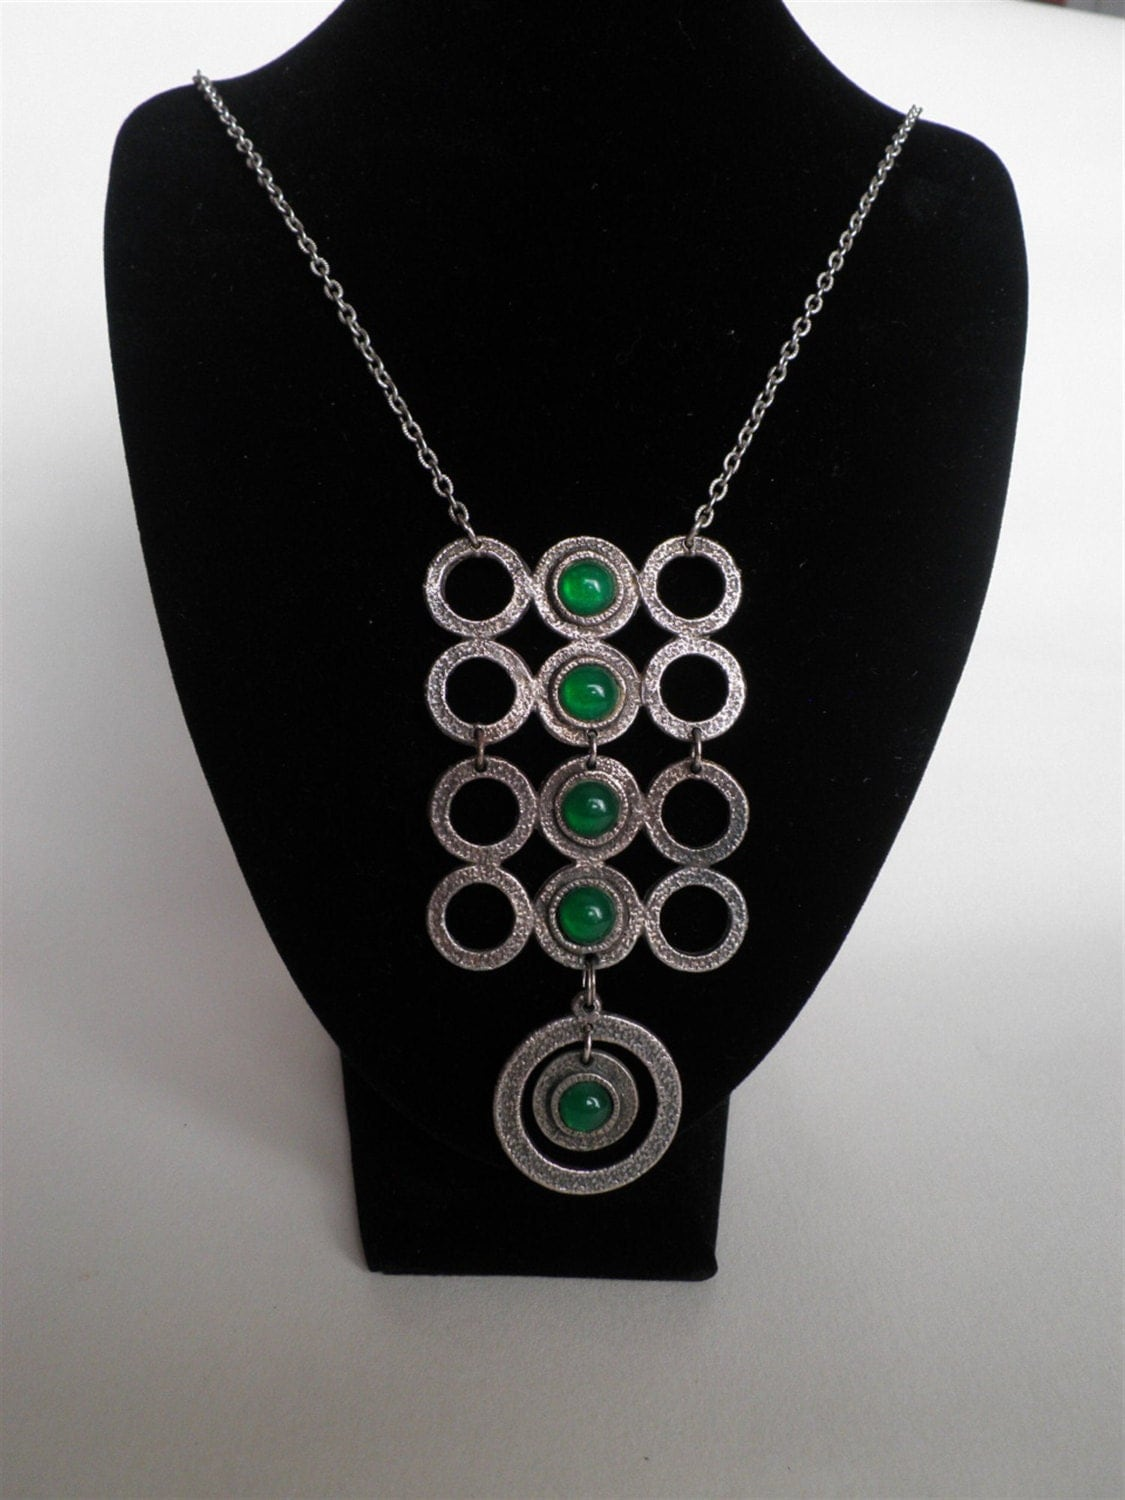 Pendant of 5 Jade Cabochons set in Pewter - St Patricks Day and beyond - Free Shipping